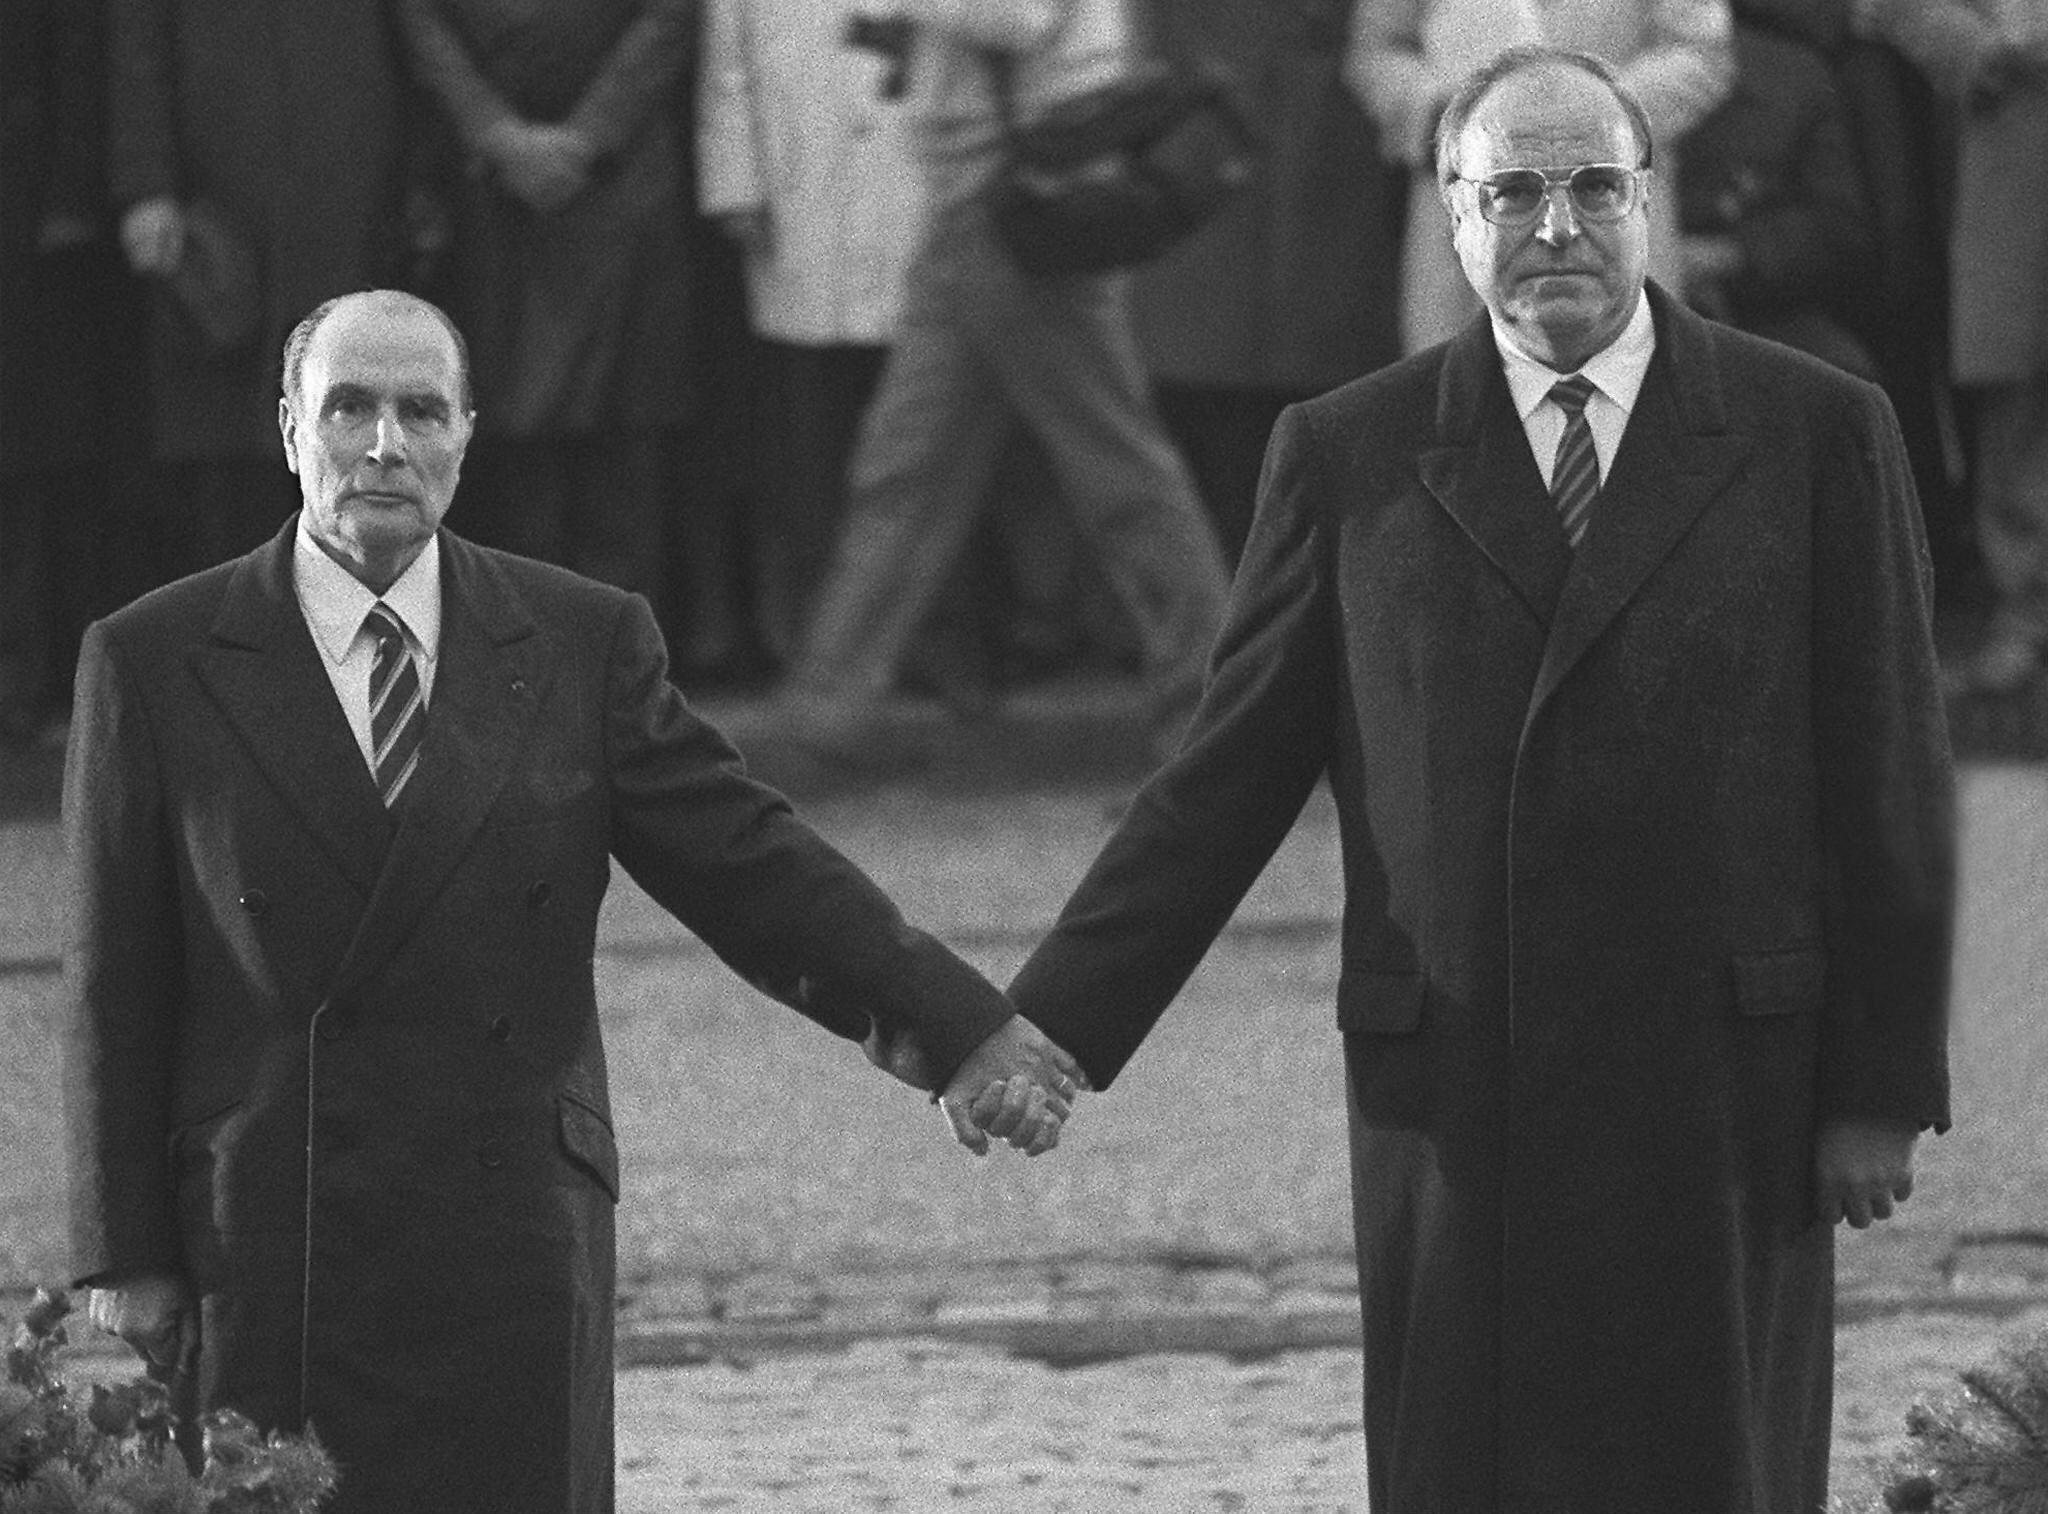 Unifier of Germany, integrator of Europe, Helmut Kohl dead (Lead, Changing dateline)